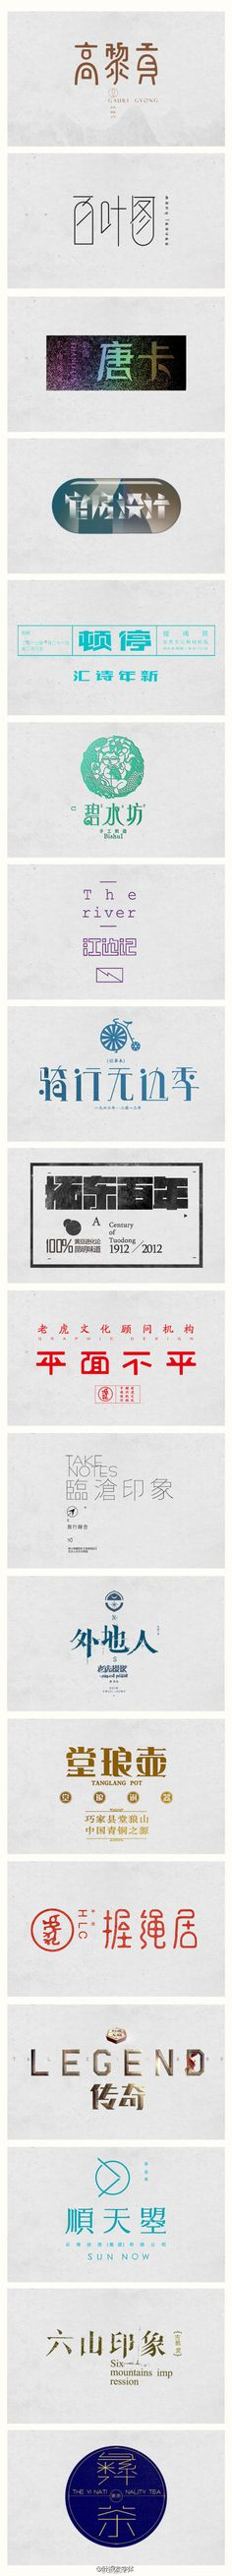 Chinese typography - DESIGN - for font design - Calligraphy Typographic Poster, Typography Fonts, Graphic Design Typography, Calligraphy Logo, Chinese Fonts Design, Japanese Graphic Design, Fonts Chinese, Chinese Logo, Interaction Design